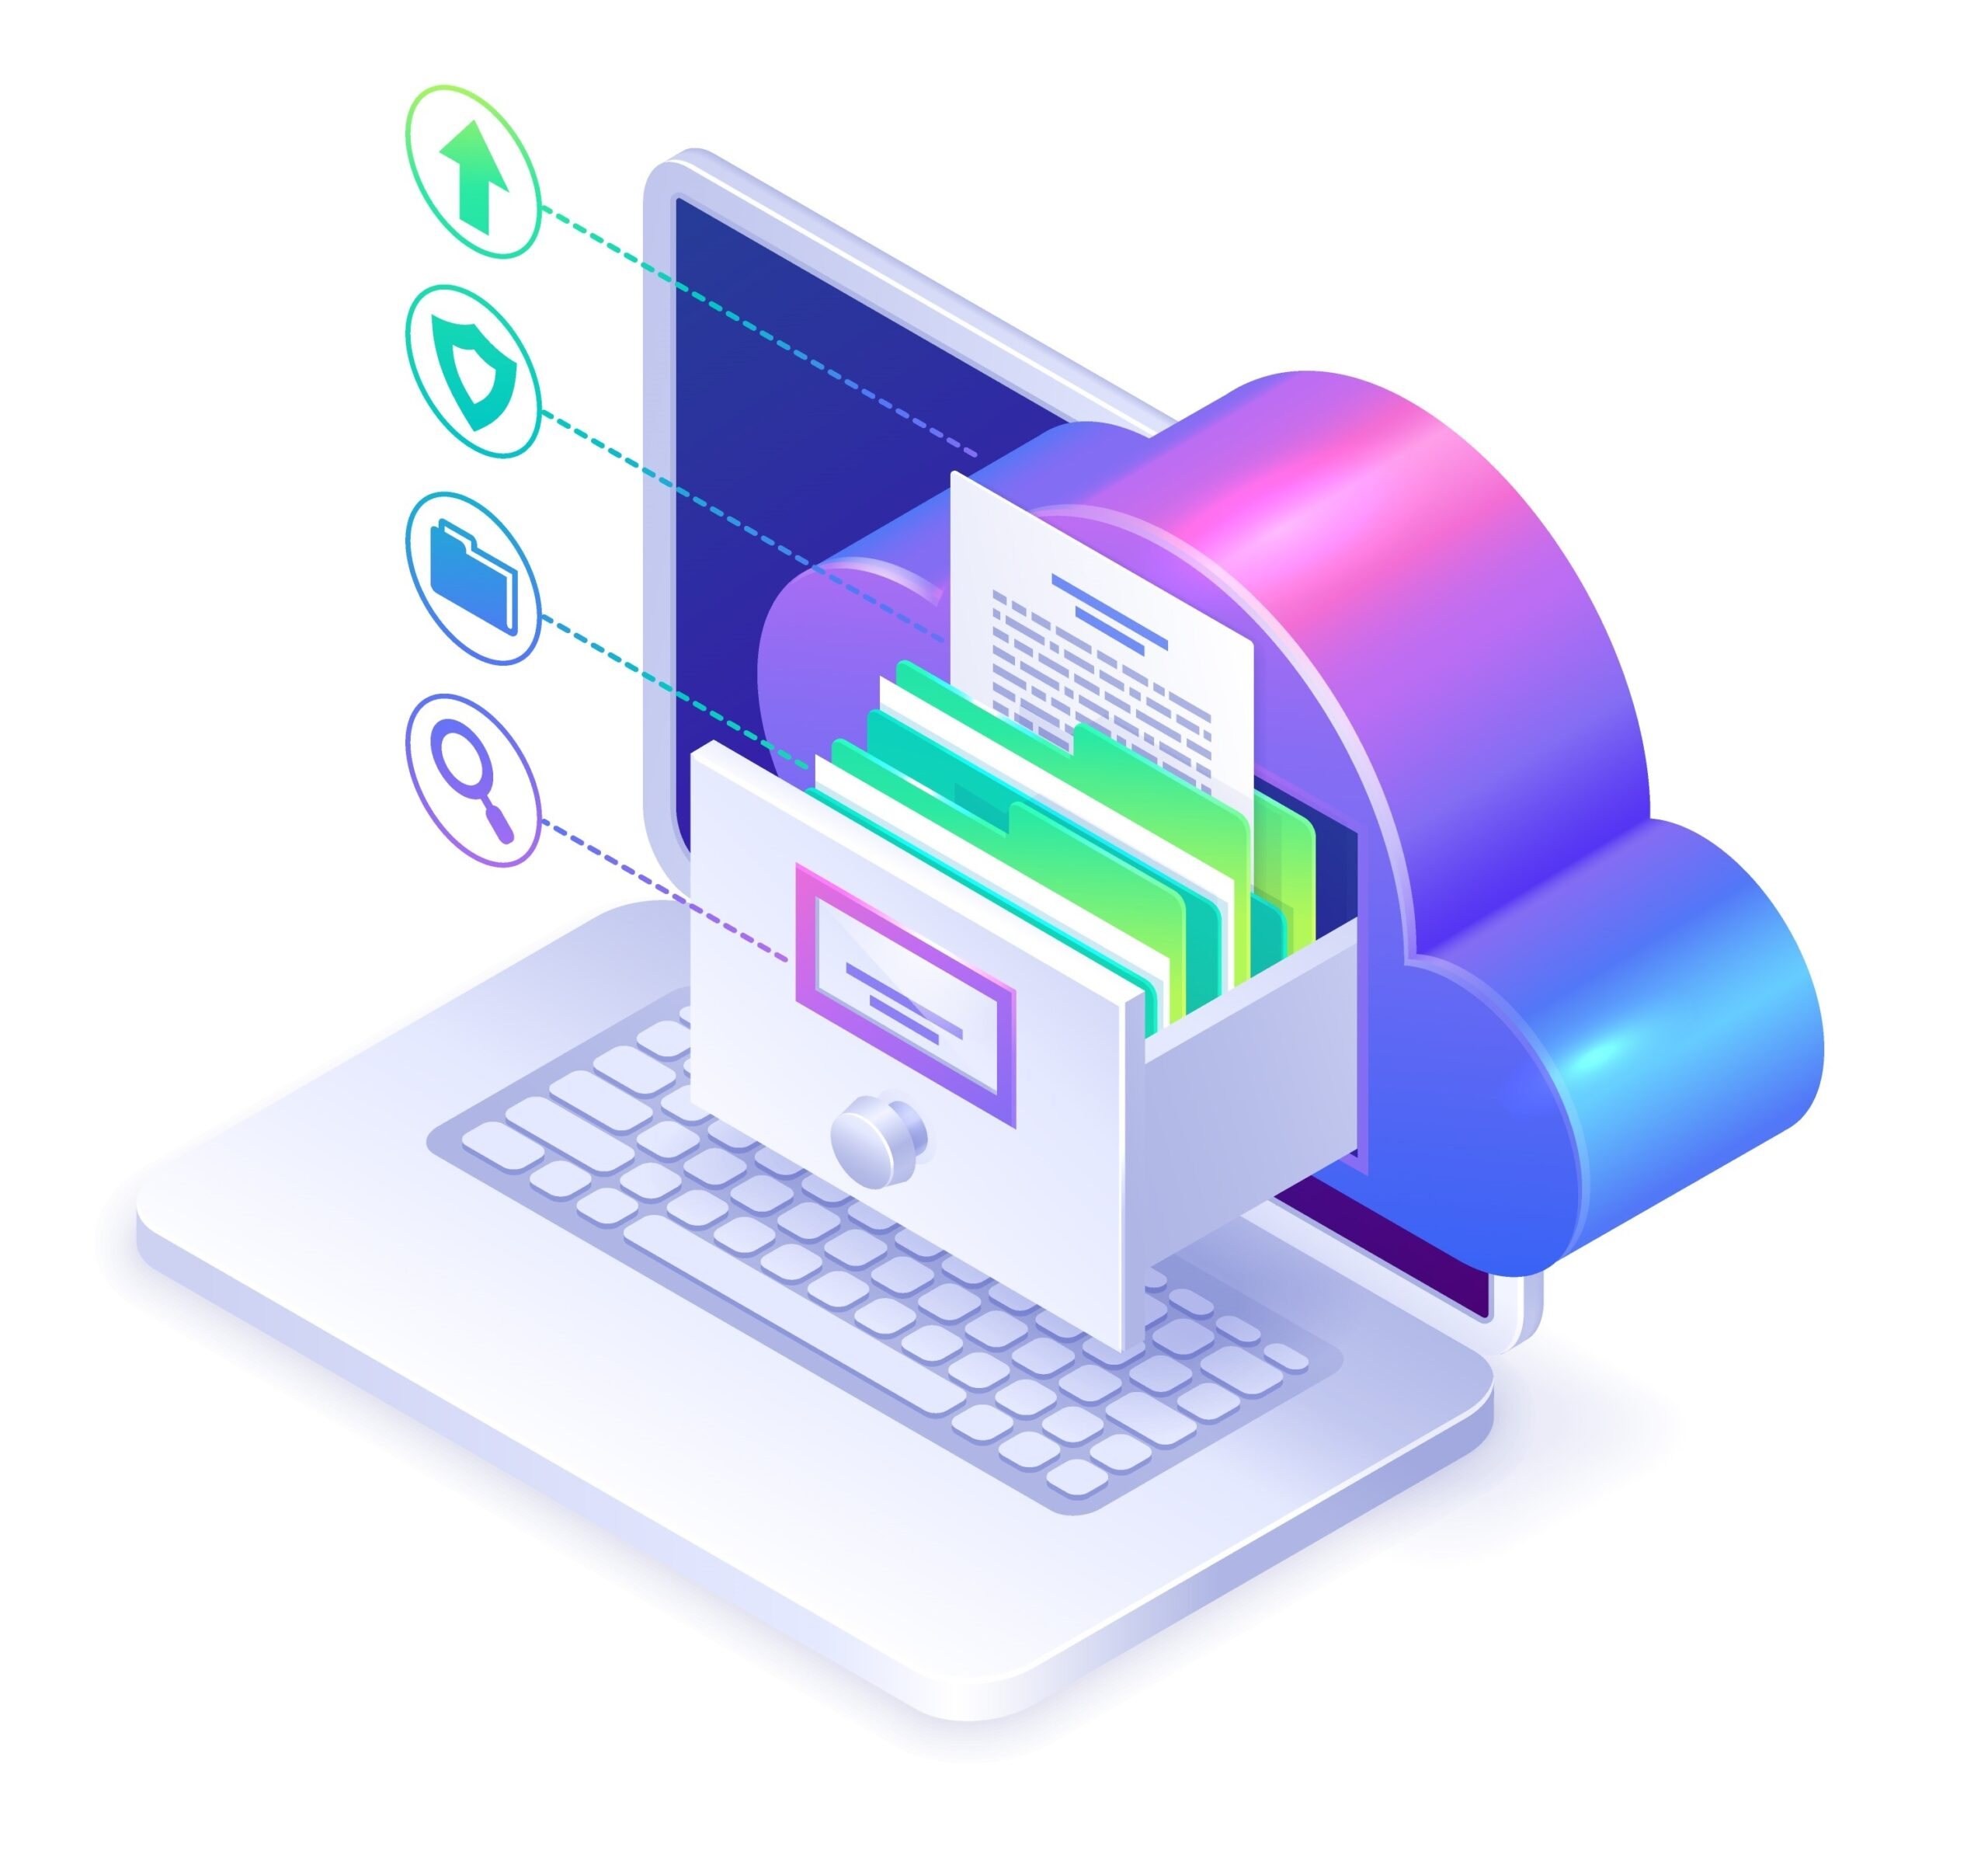 Module 6 – Cloud computing, as the future for managing and storing data